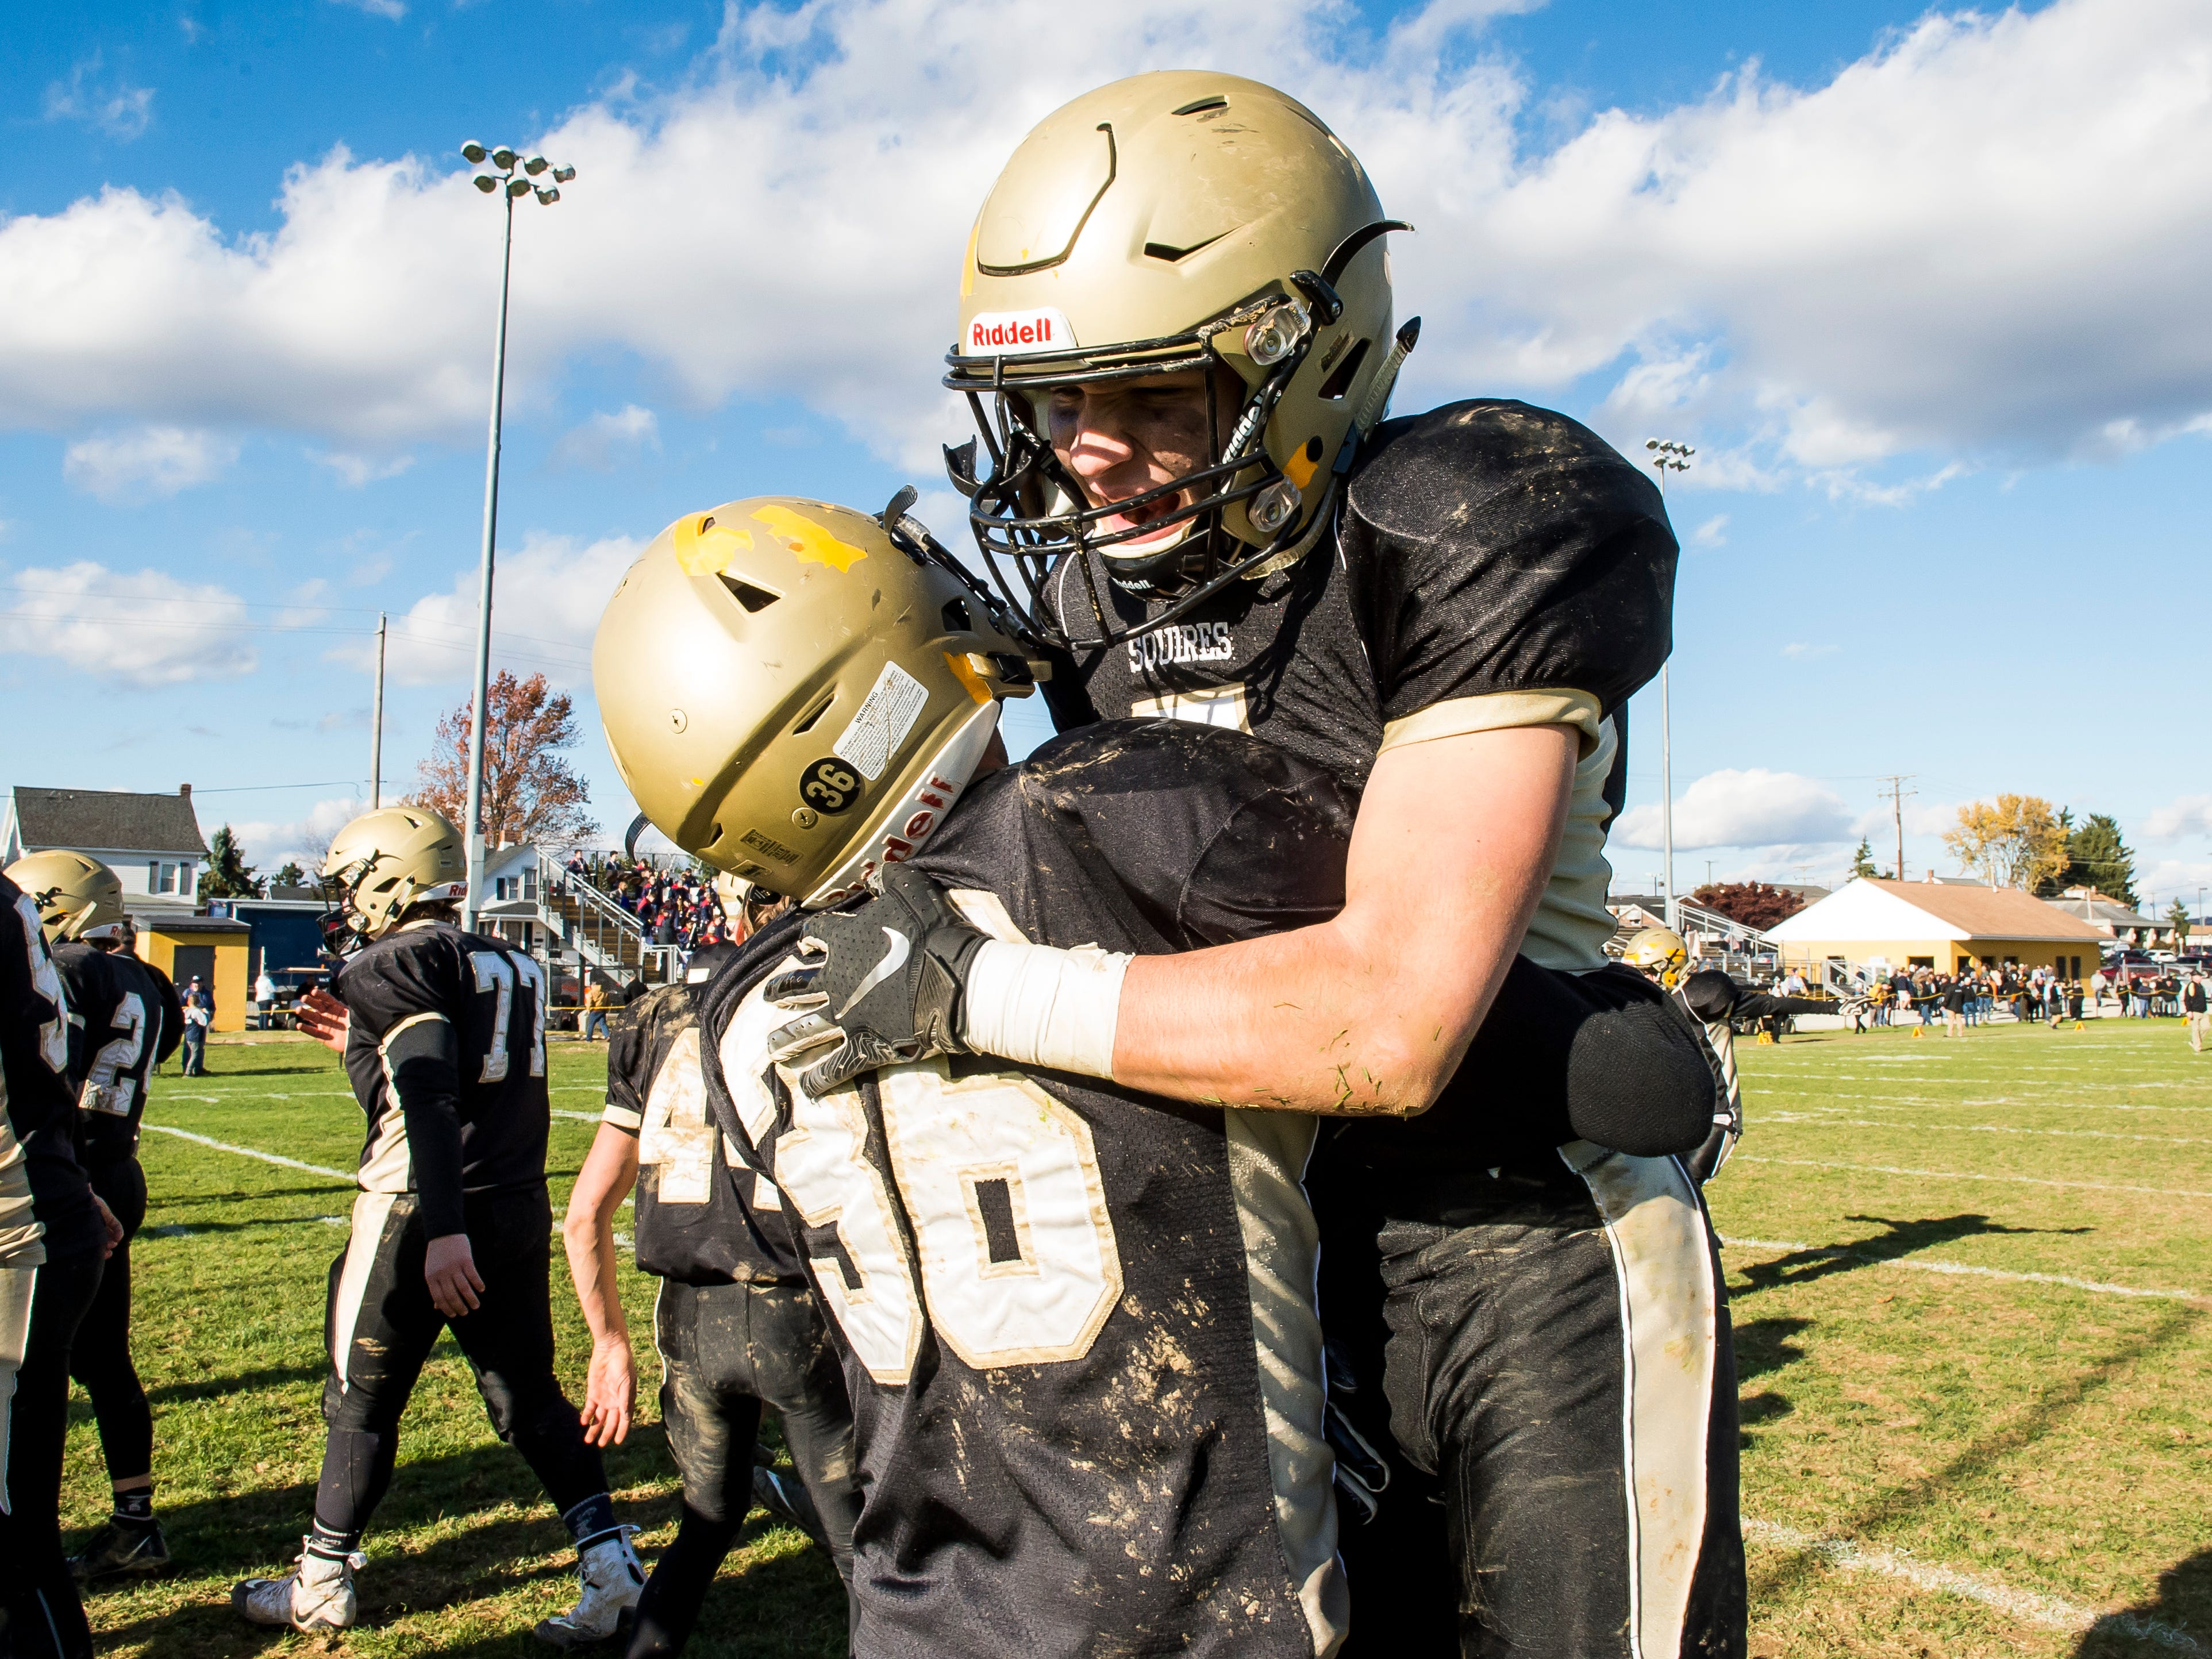 Delone Catholic's Ryan Myers (36) celebrates with Gabe Lee after the Squires defeated Upper Dauphin 48-23 in a District III Class 2A semifinal game on Saturday, November 3, 2018.